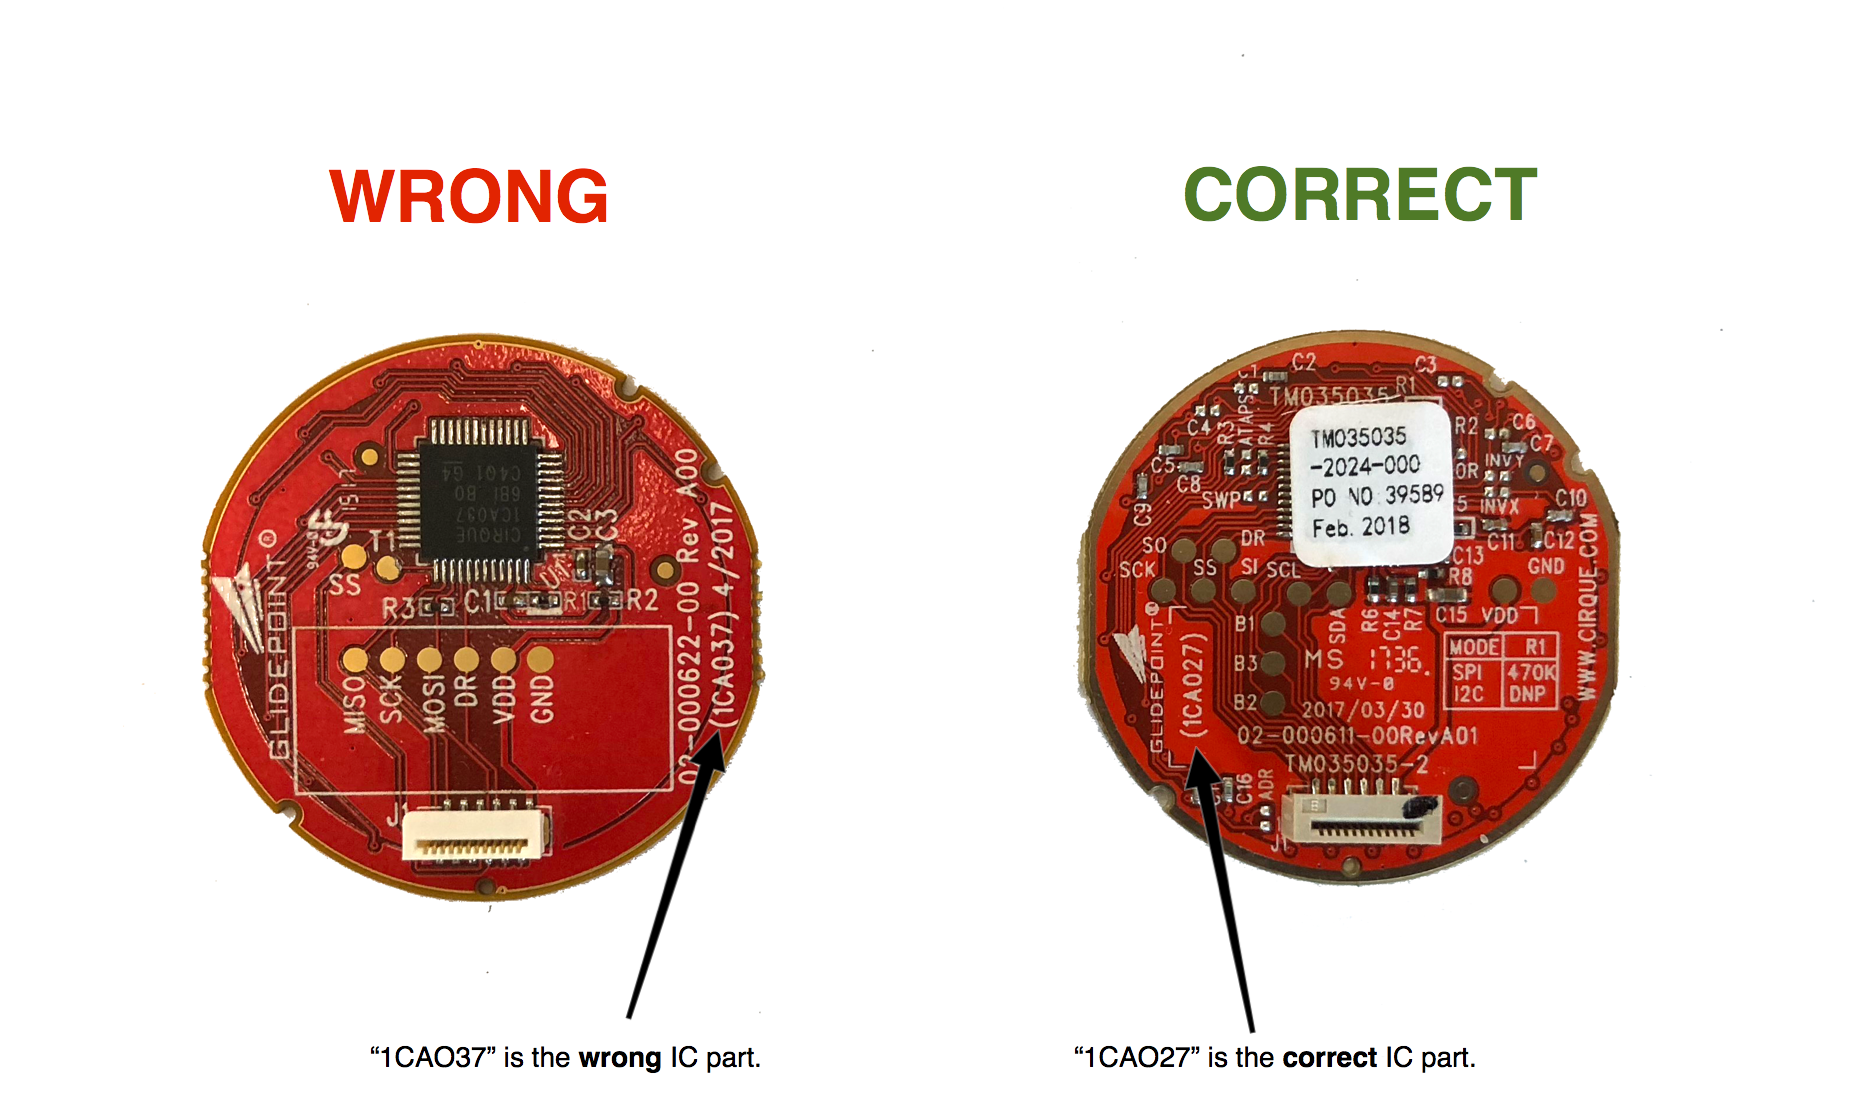 NOTE: The sample correct part shows a sticker on the ASIC. This may or may not be present on actual parts.